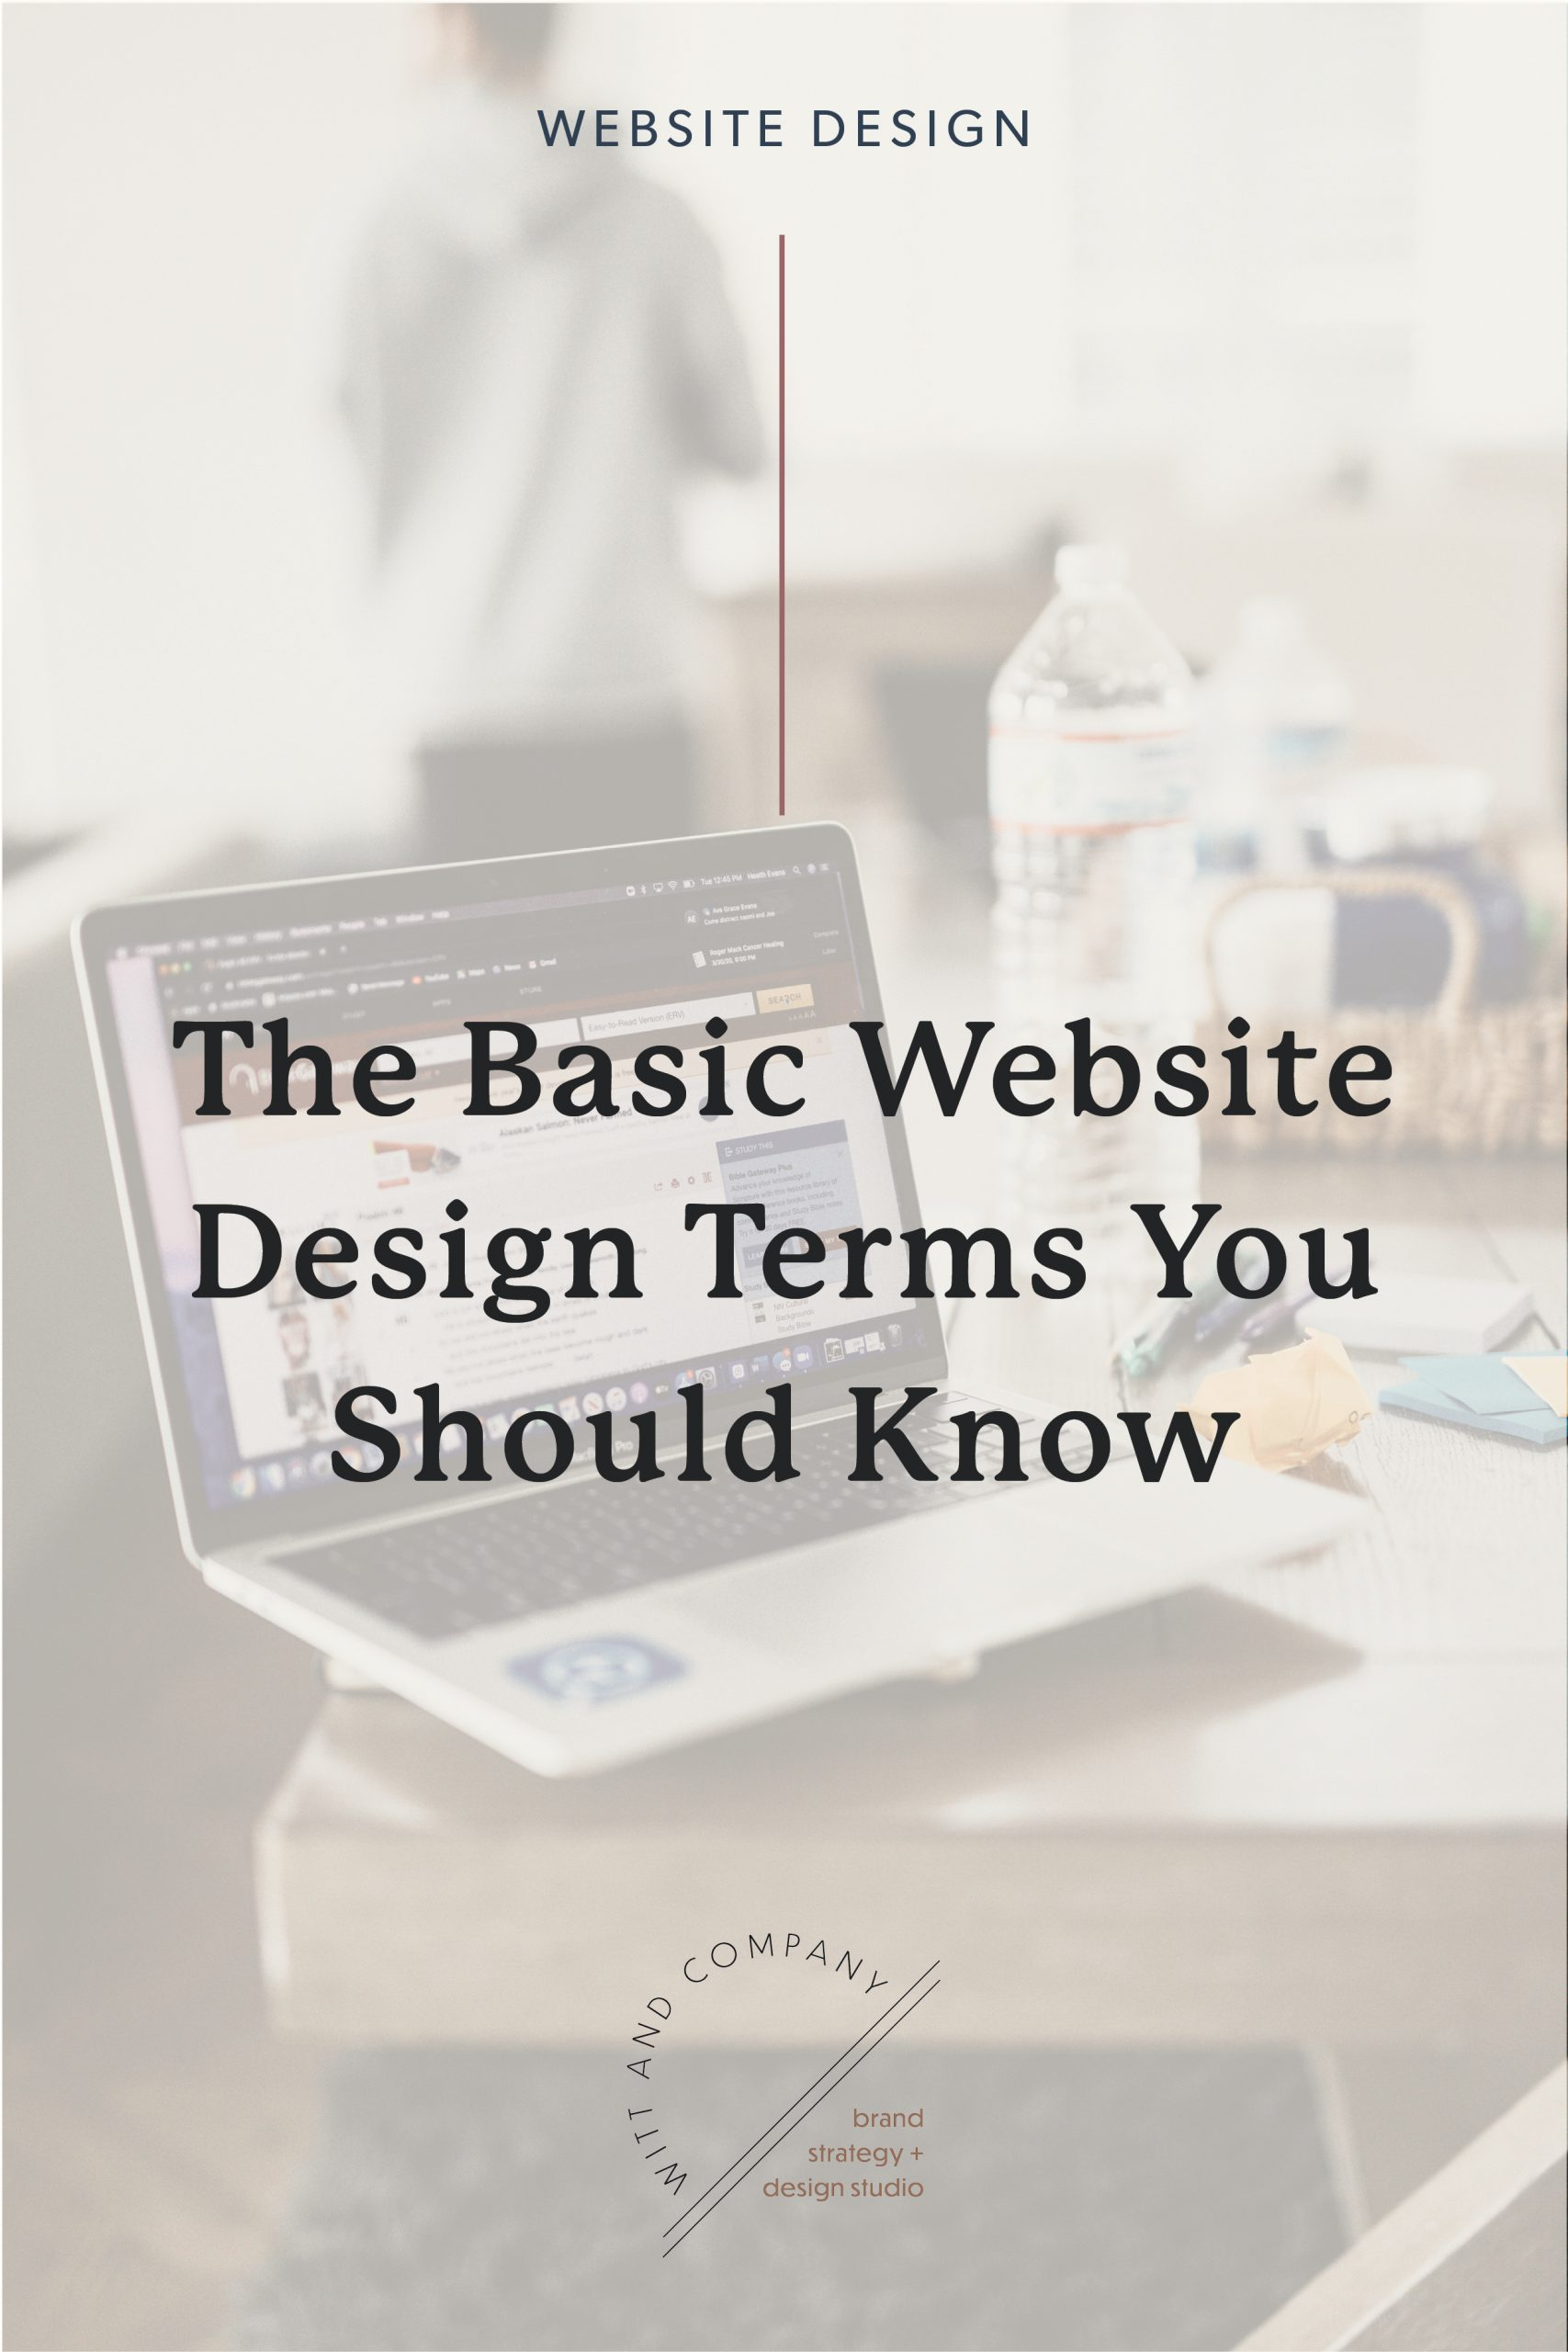 Basic Website Design Terminology – The Web Jargon You Should Know